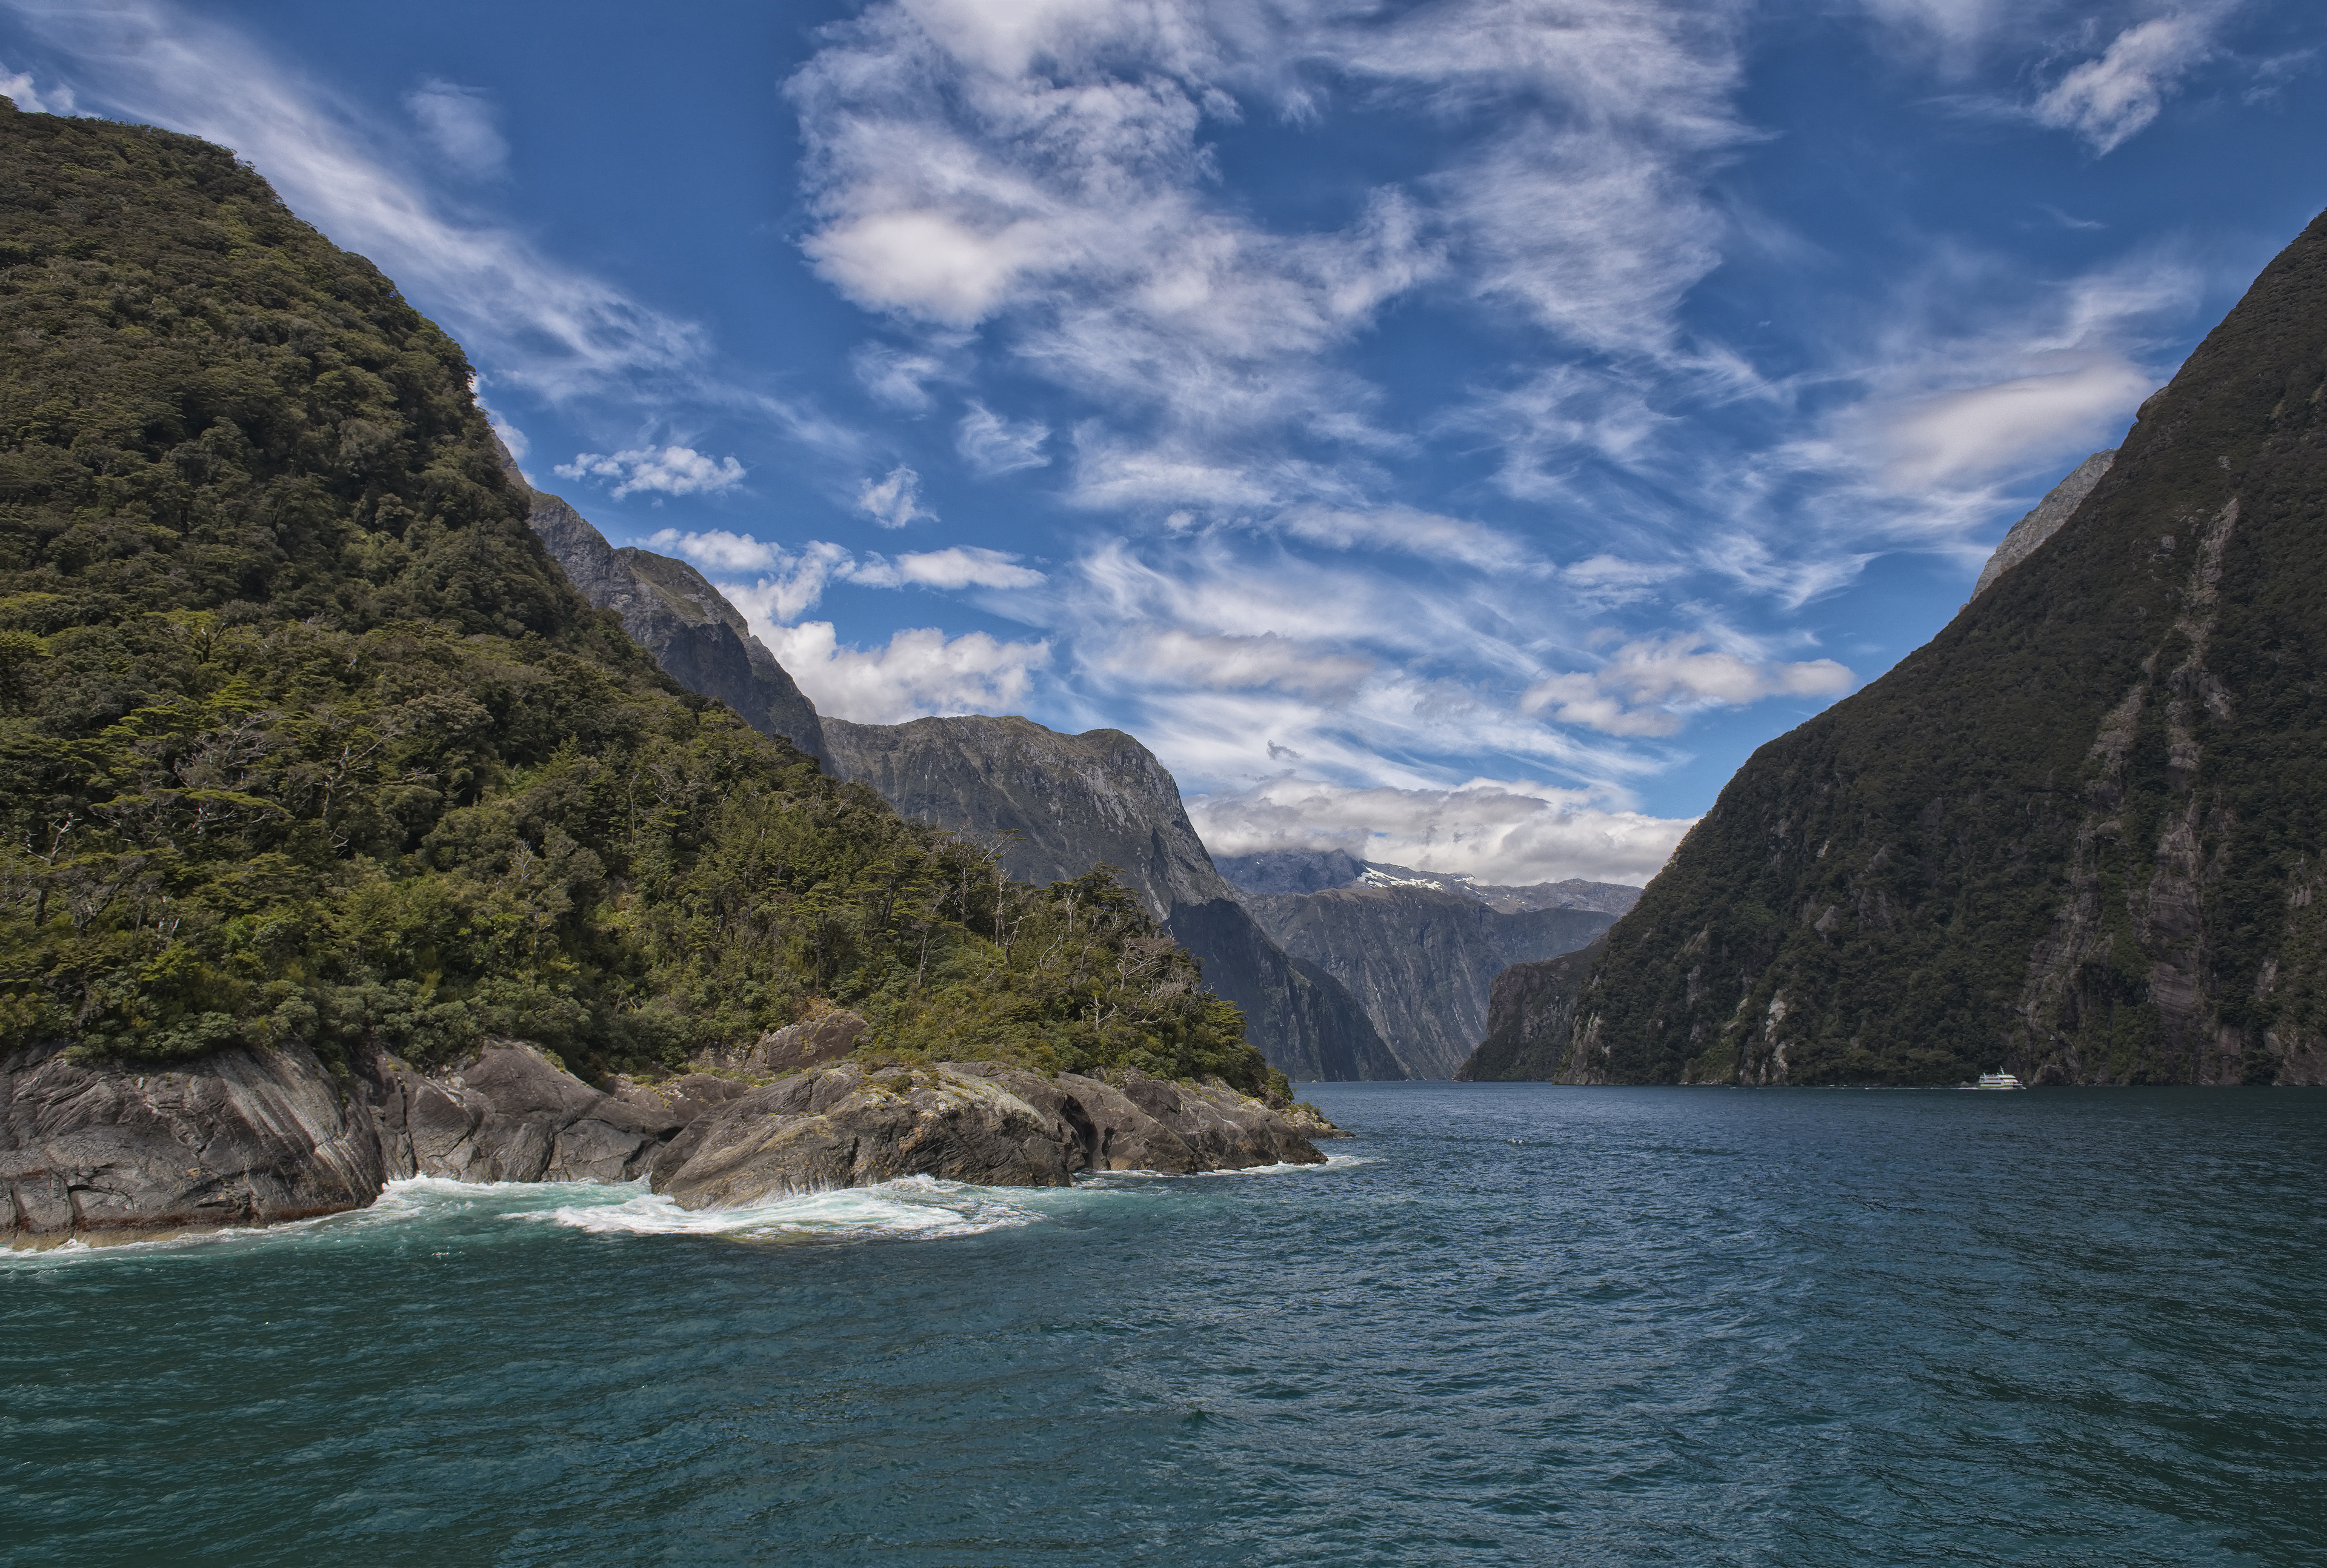 At the end of Milford Sound